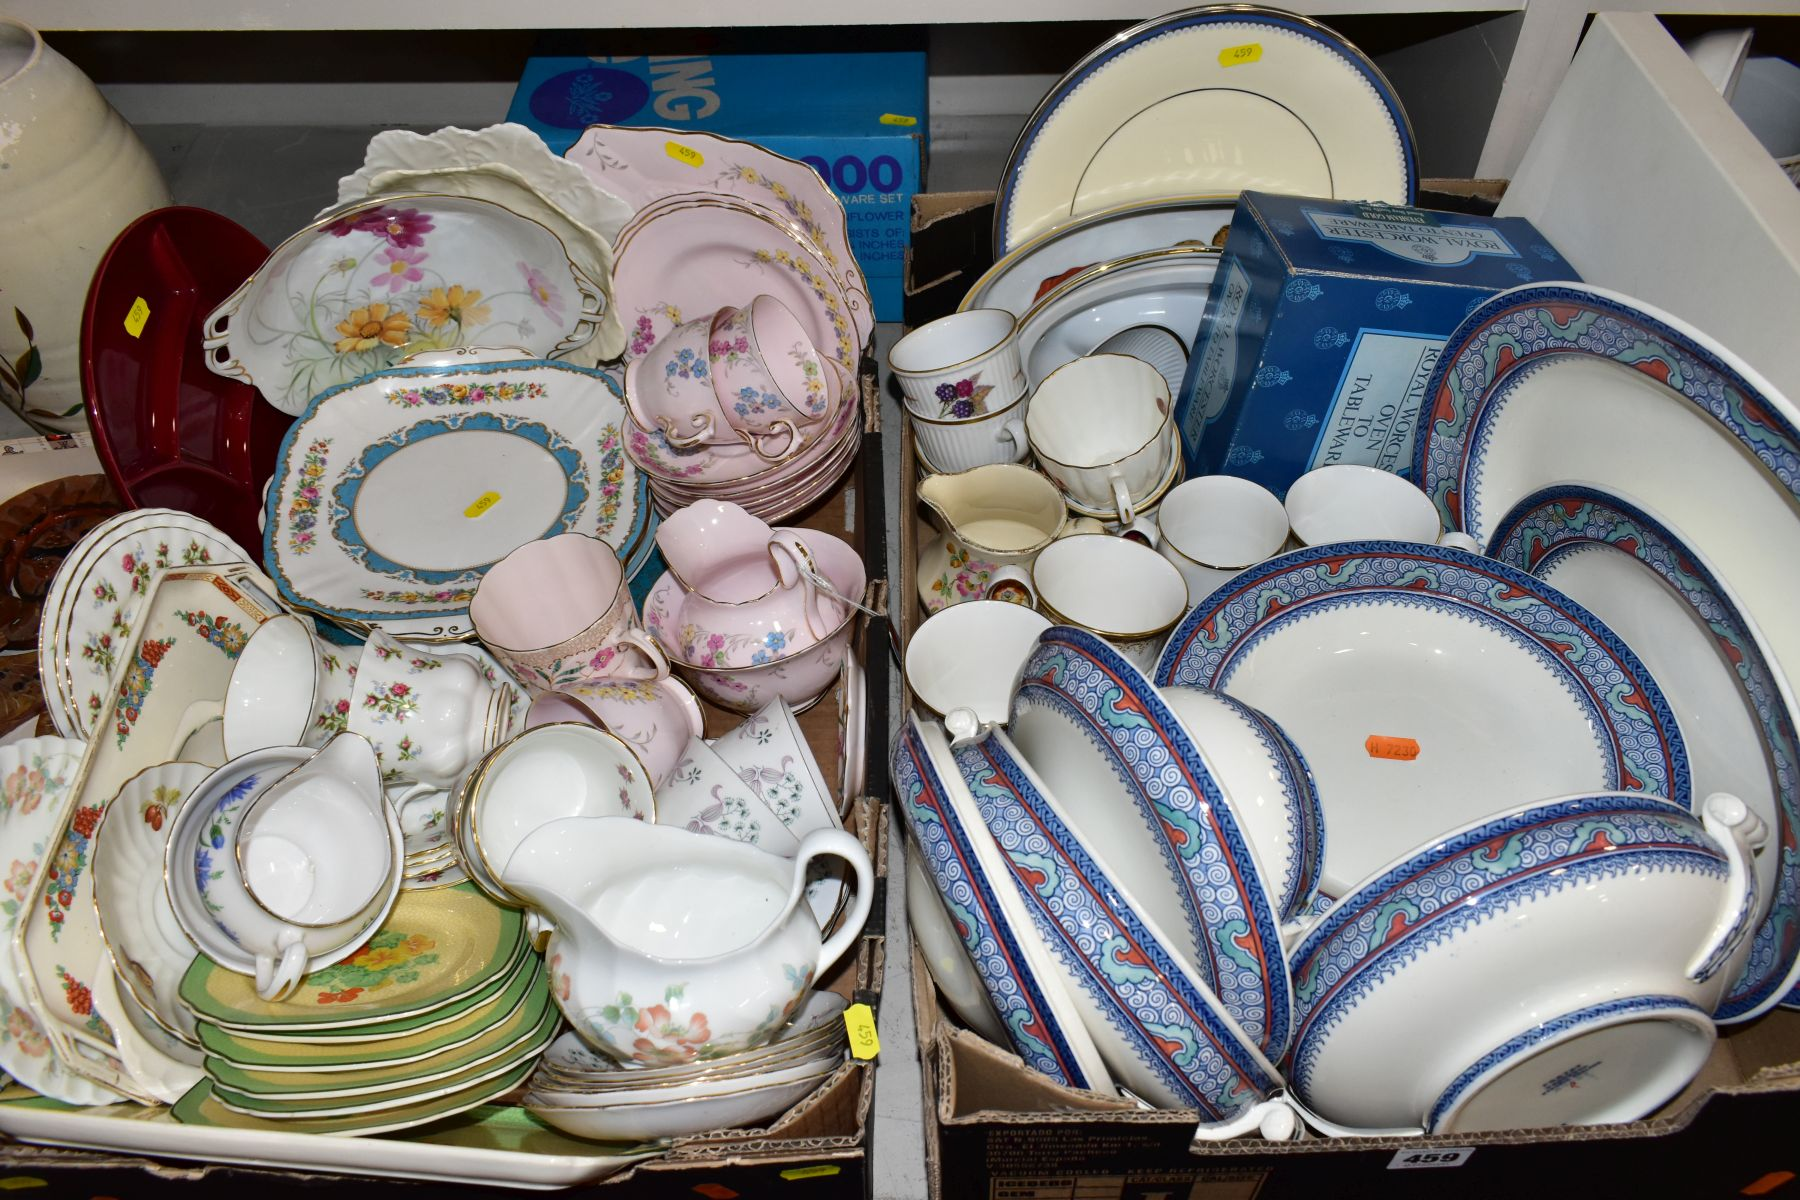 TWO BOXES OF WEDGWOOD ROYAL WORCESTER, ROYAL ALBERT AND TUSCAN CHINA TEA AND DINNER WARES, including